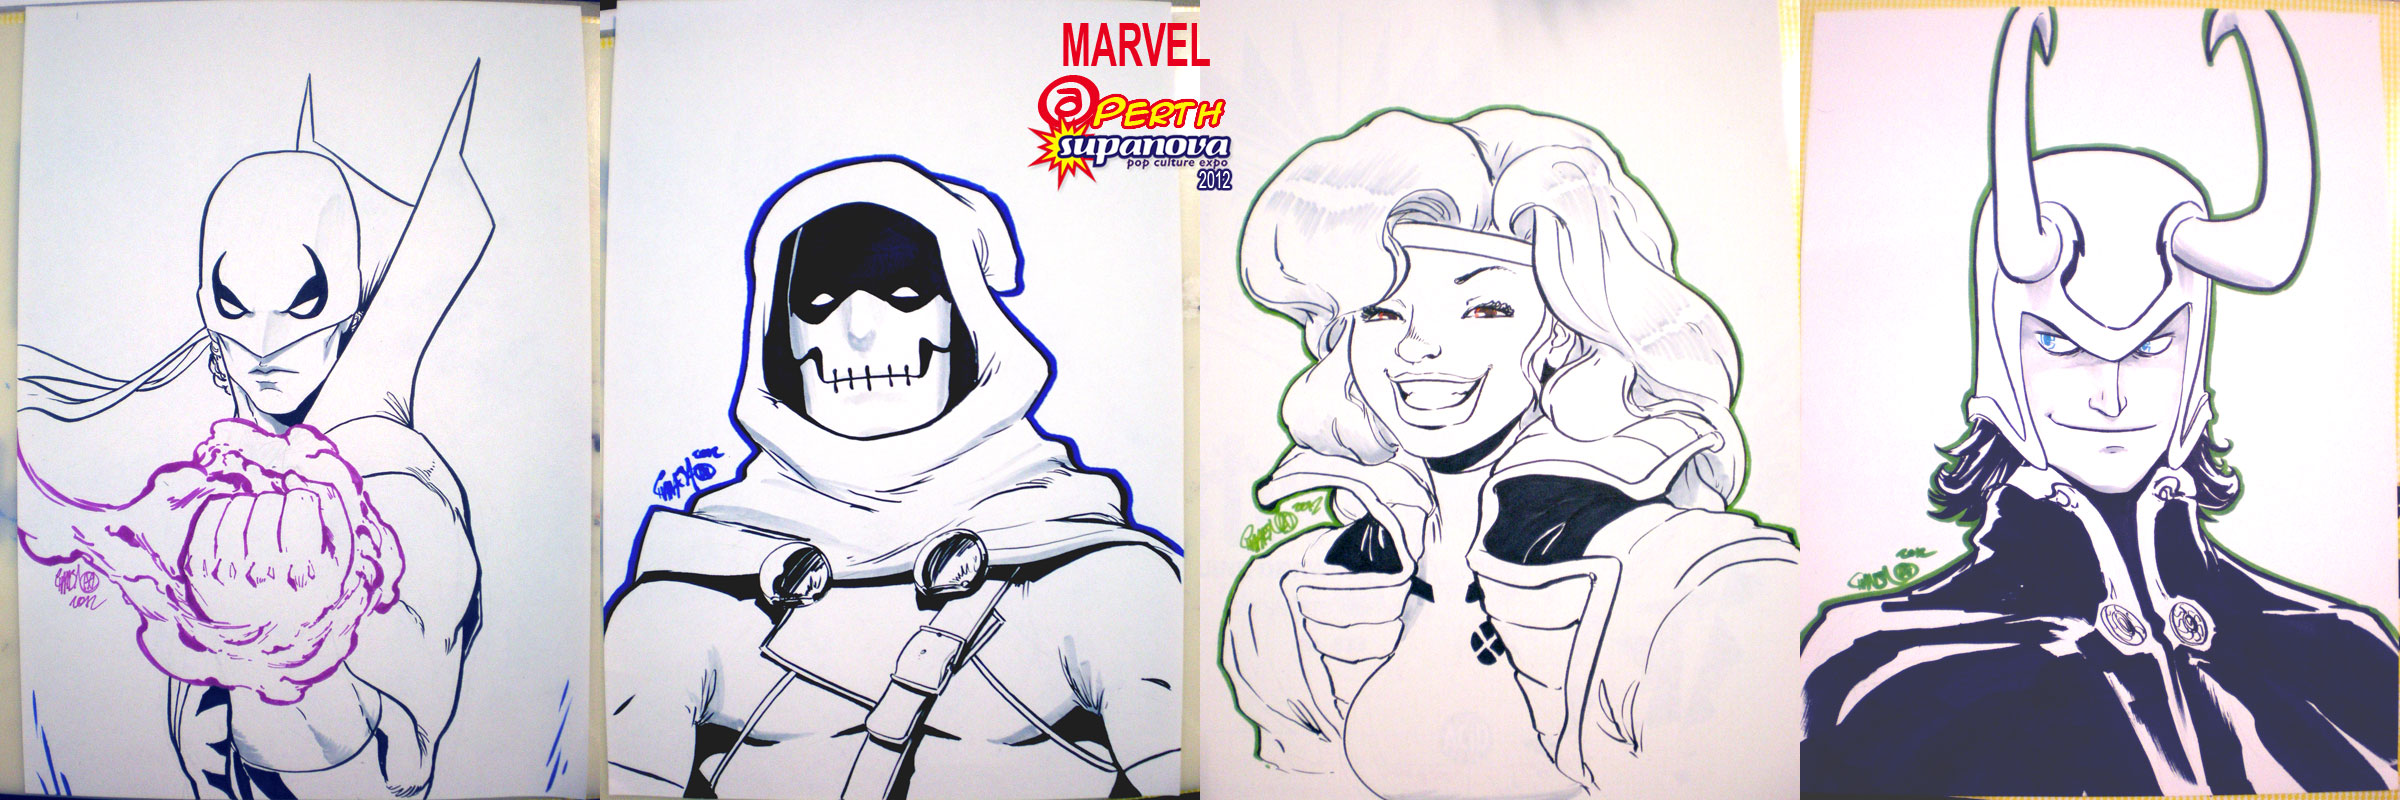 SuPERTHnova 2012 - MARVEL by theCHAMBA